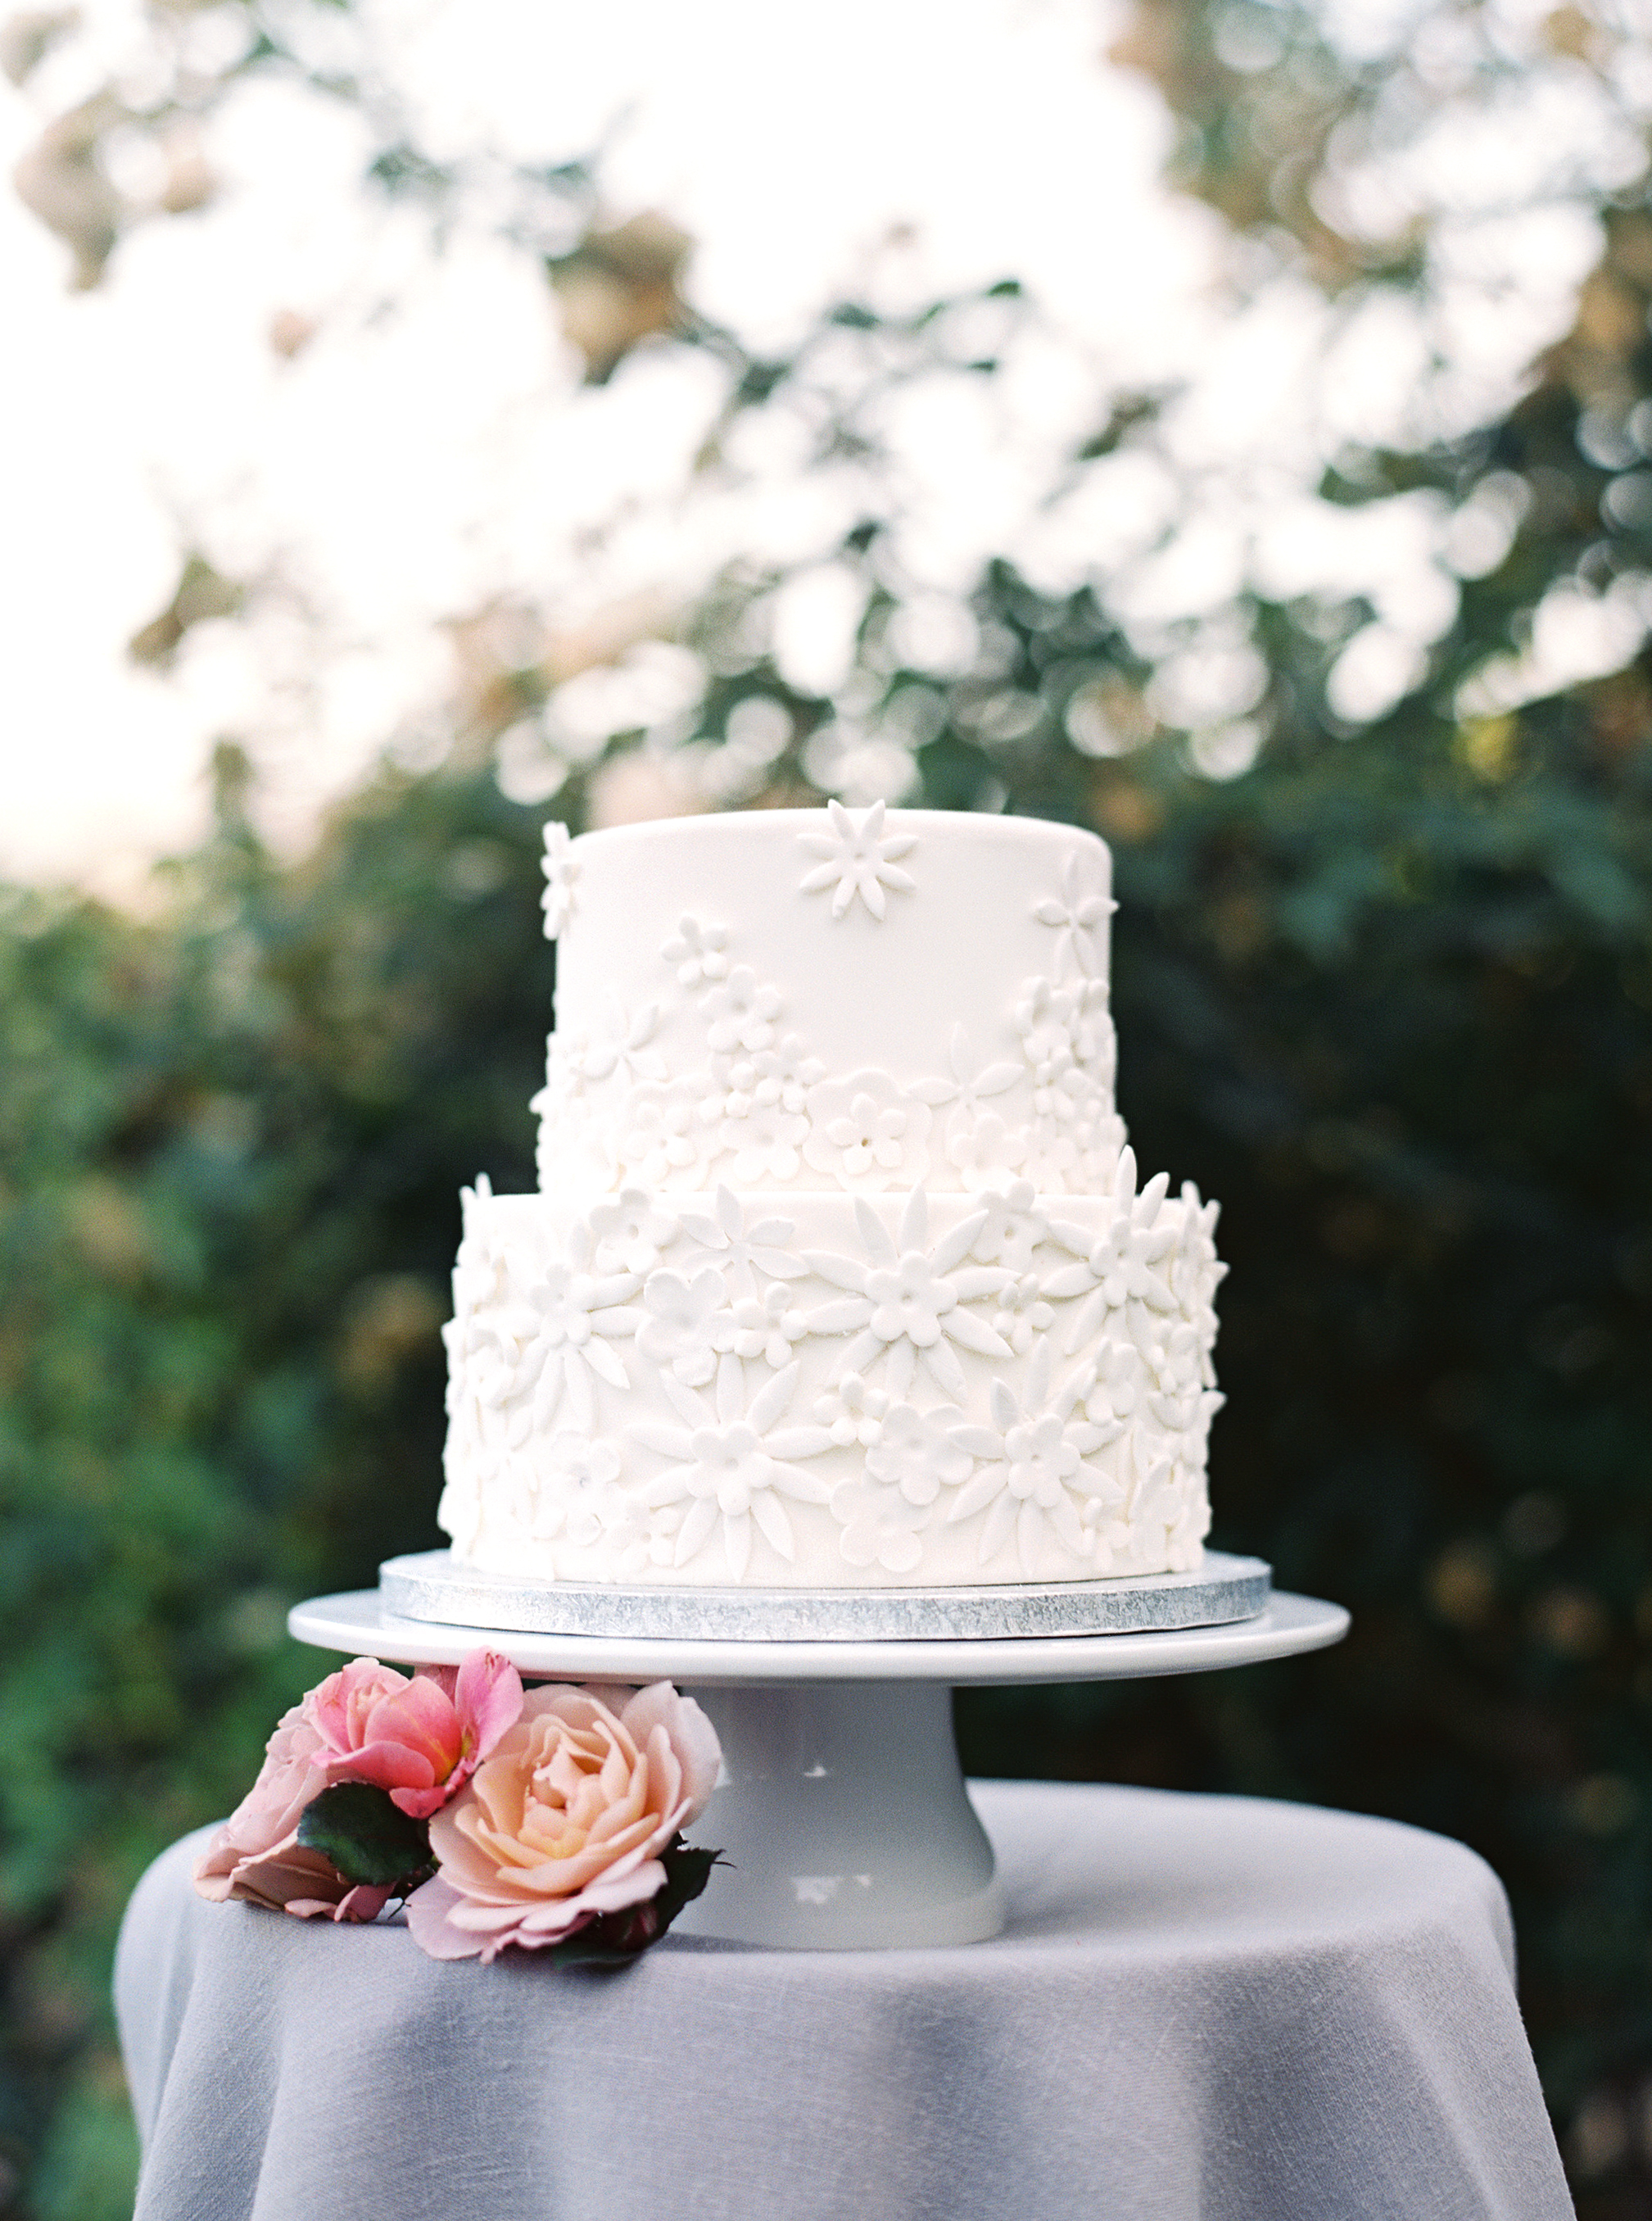 86-Photo by Christine Doneé_Cake by Lark Cake Shop_ Kestrel Park.jpg